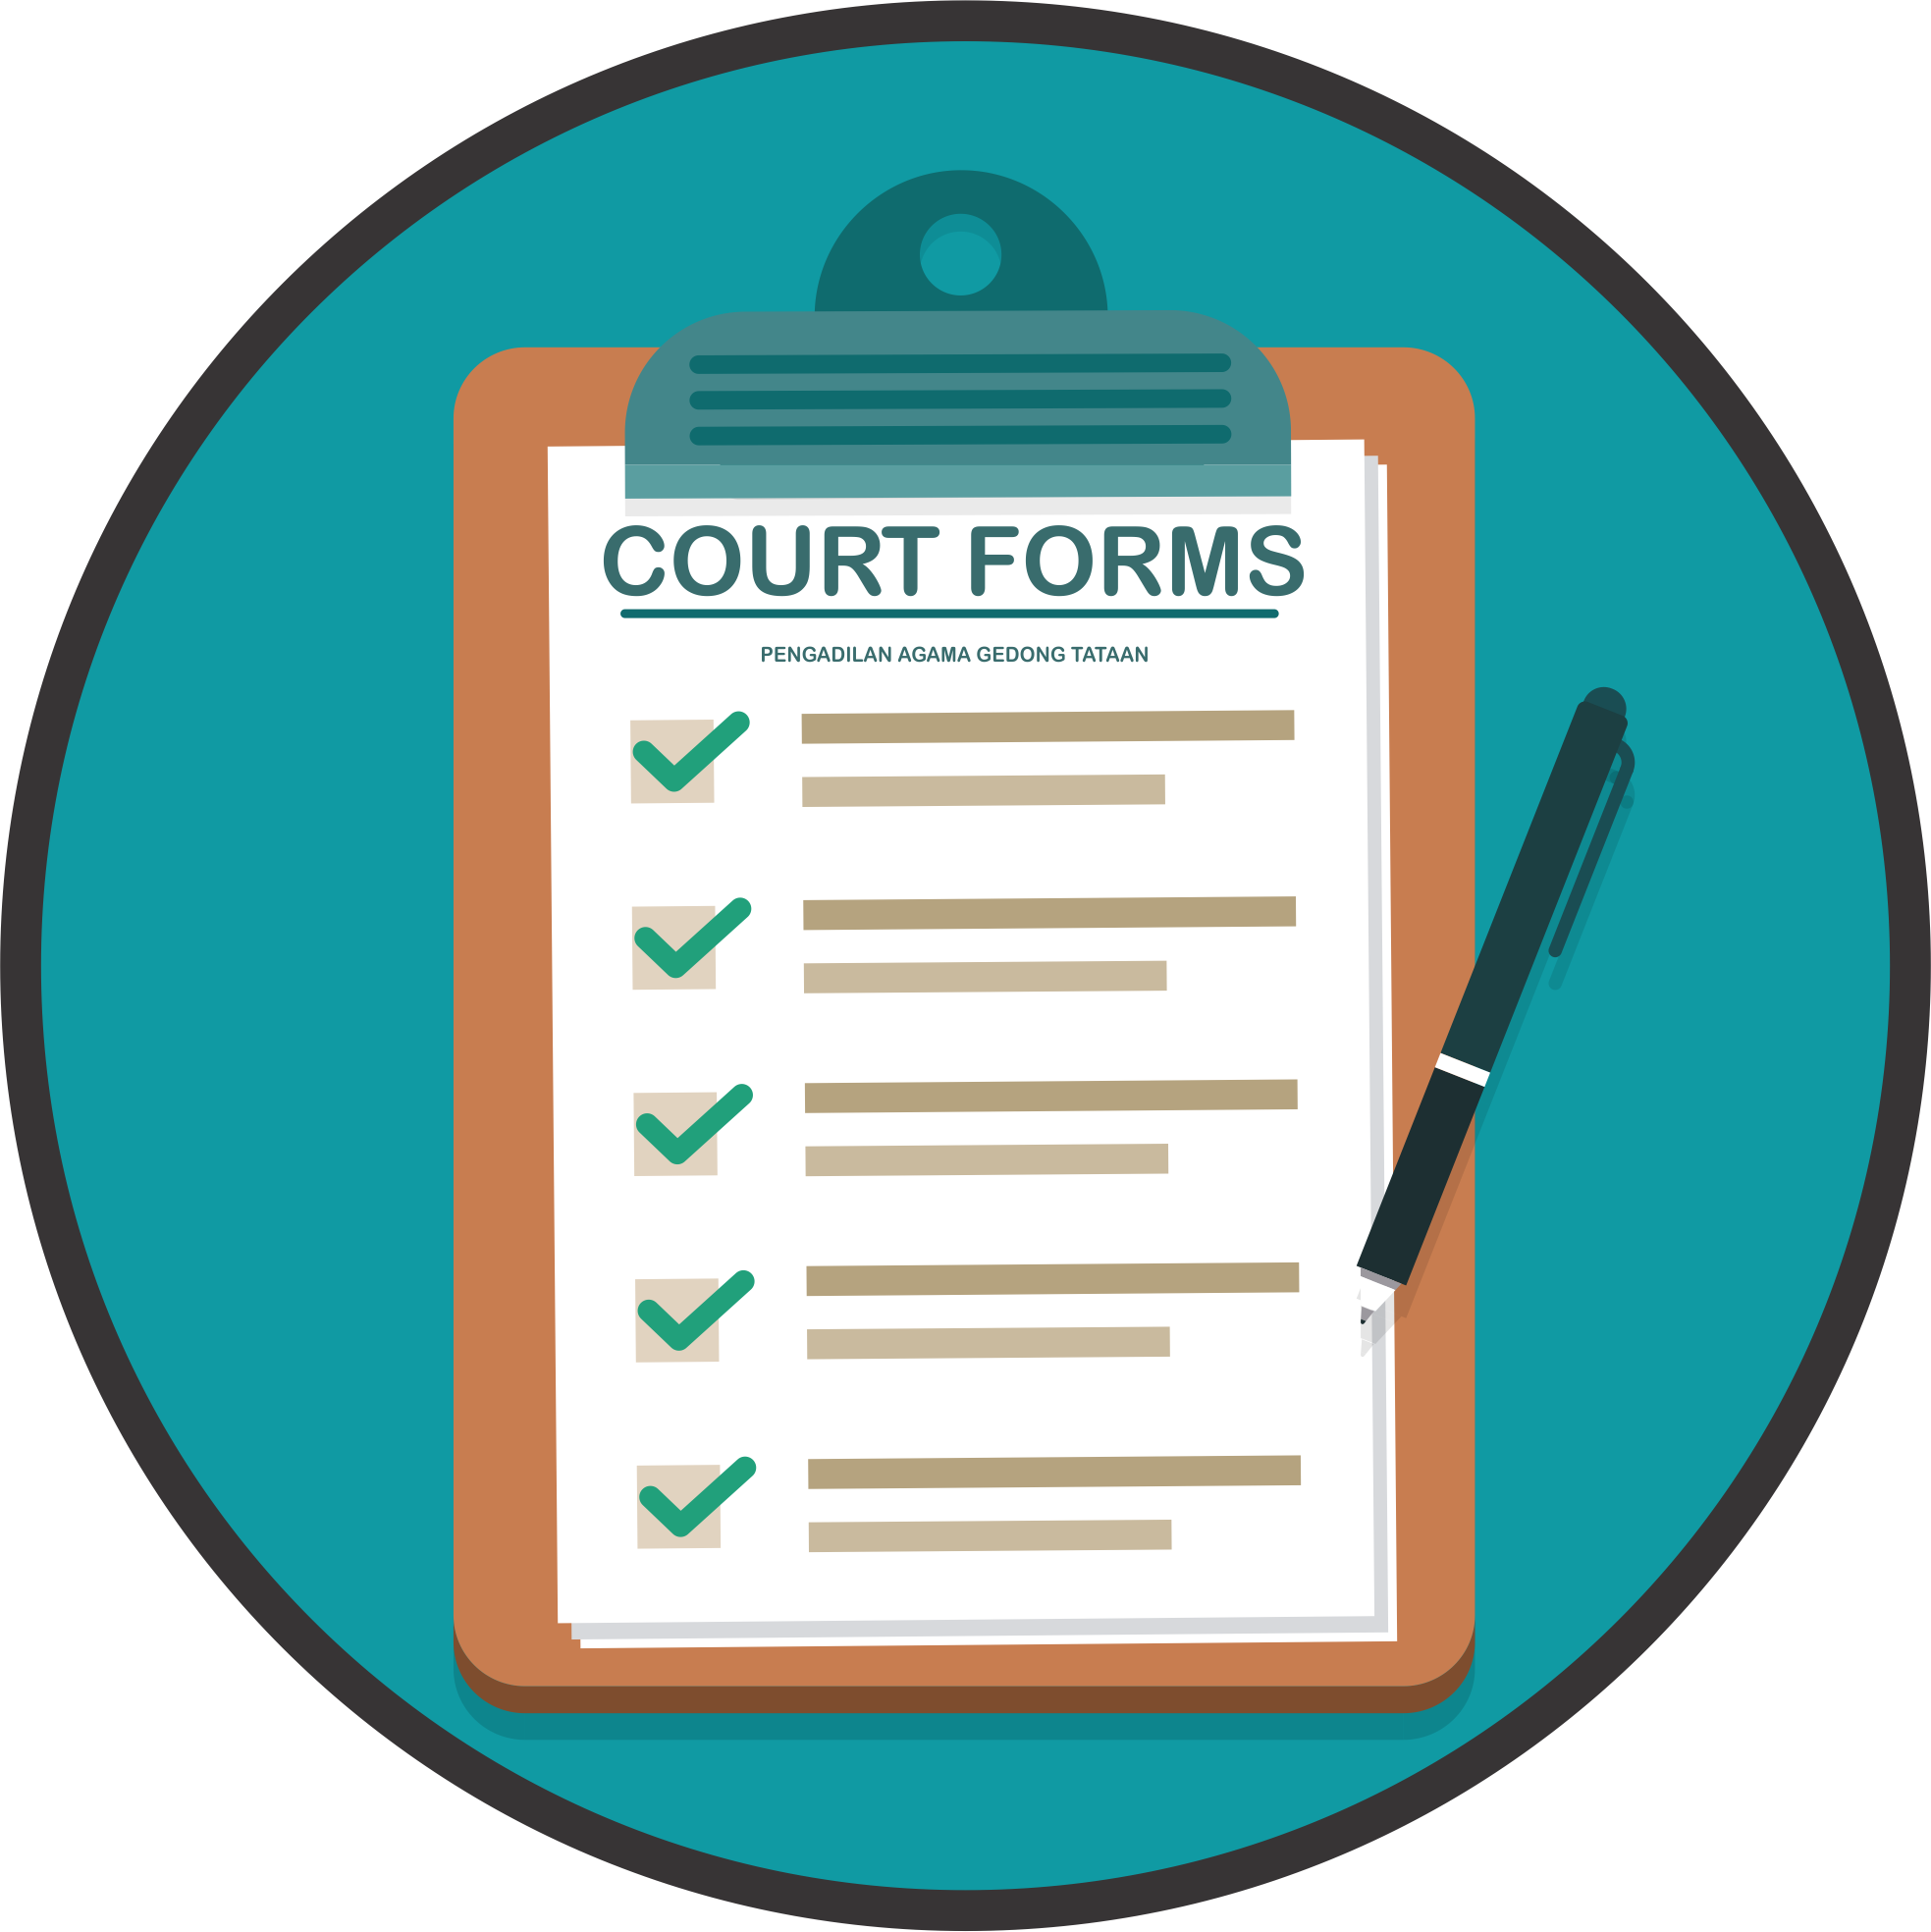 flaticon COURT FORM